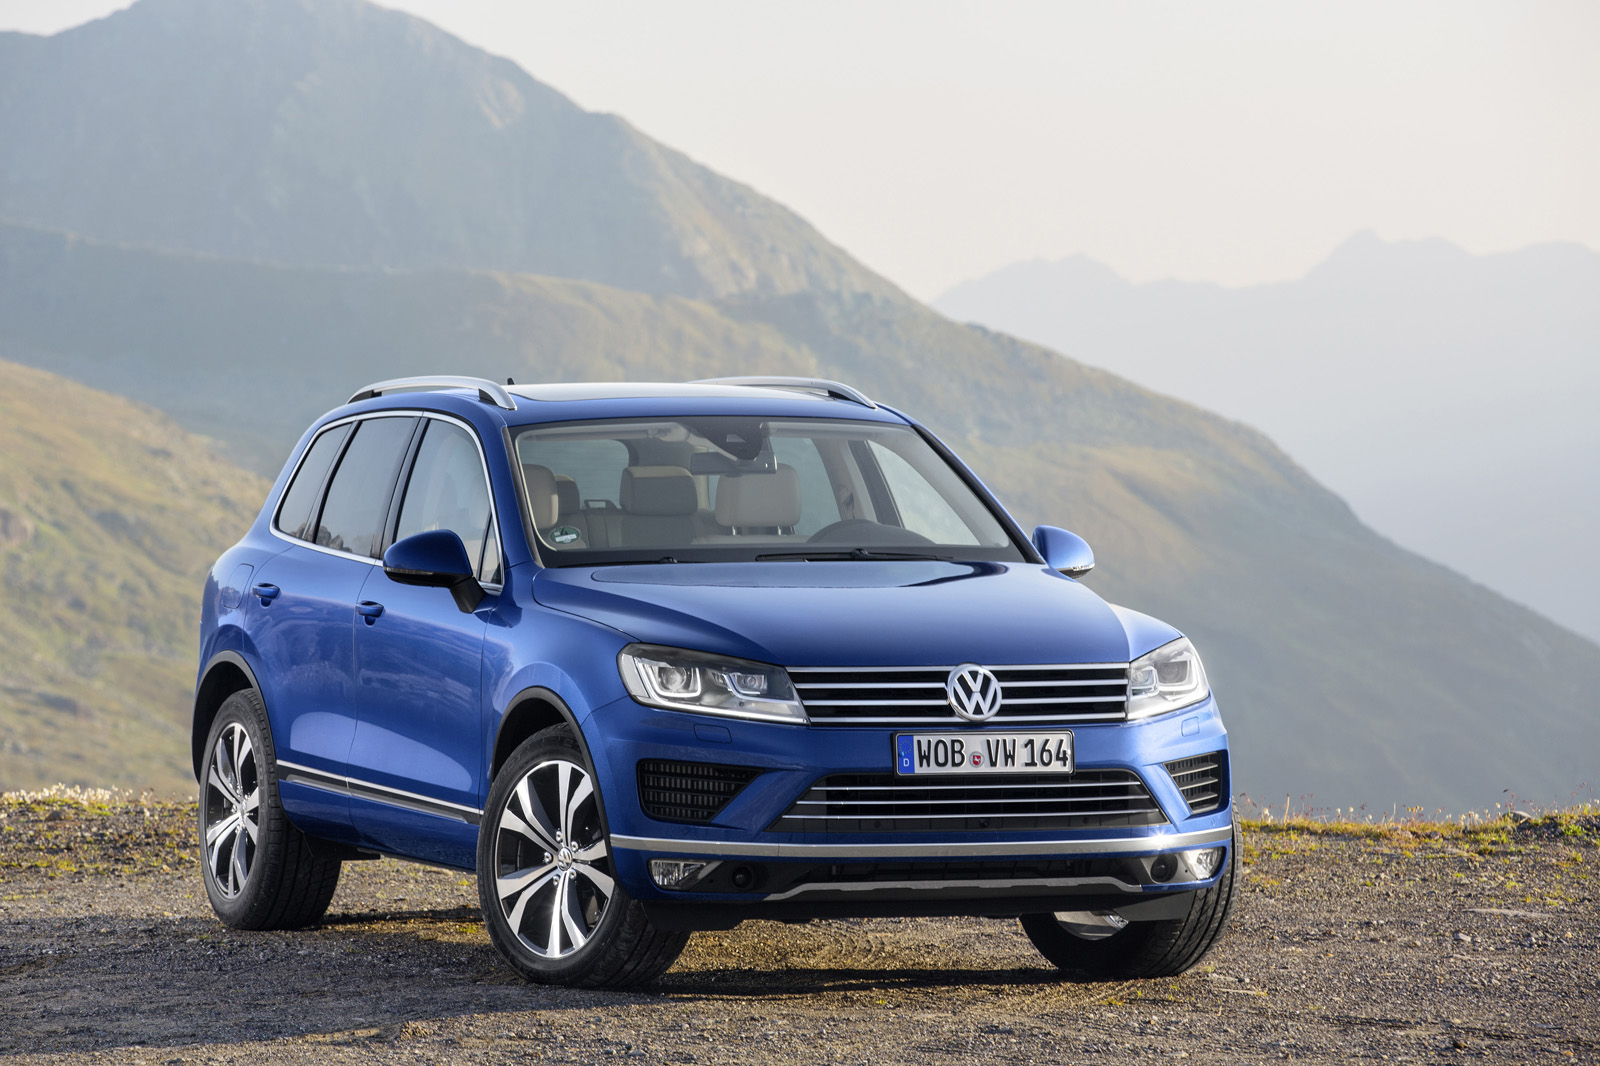 recalls mercedes cars more recall suvs automotive announce for vw than volkswagen